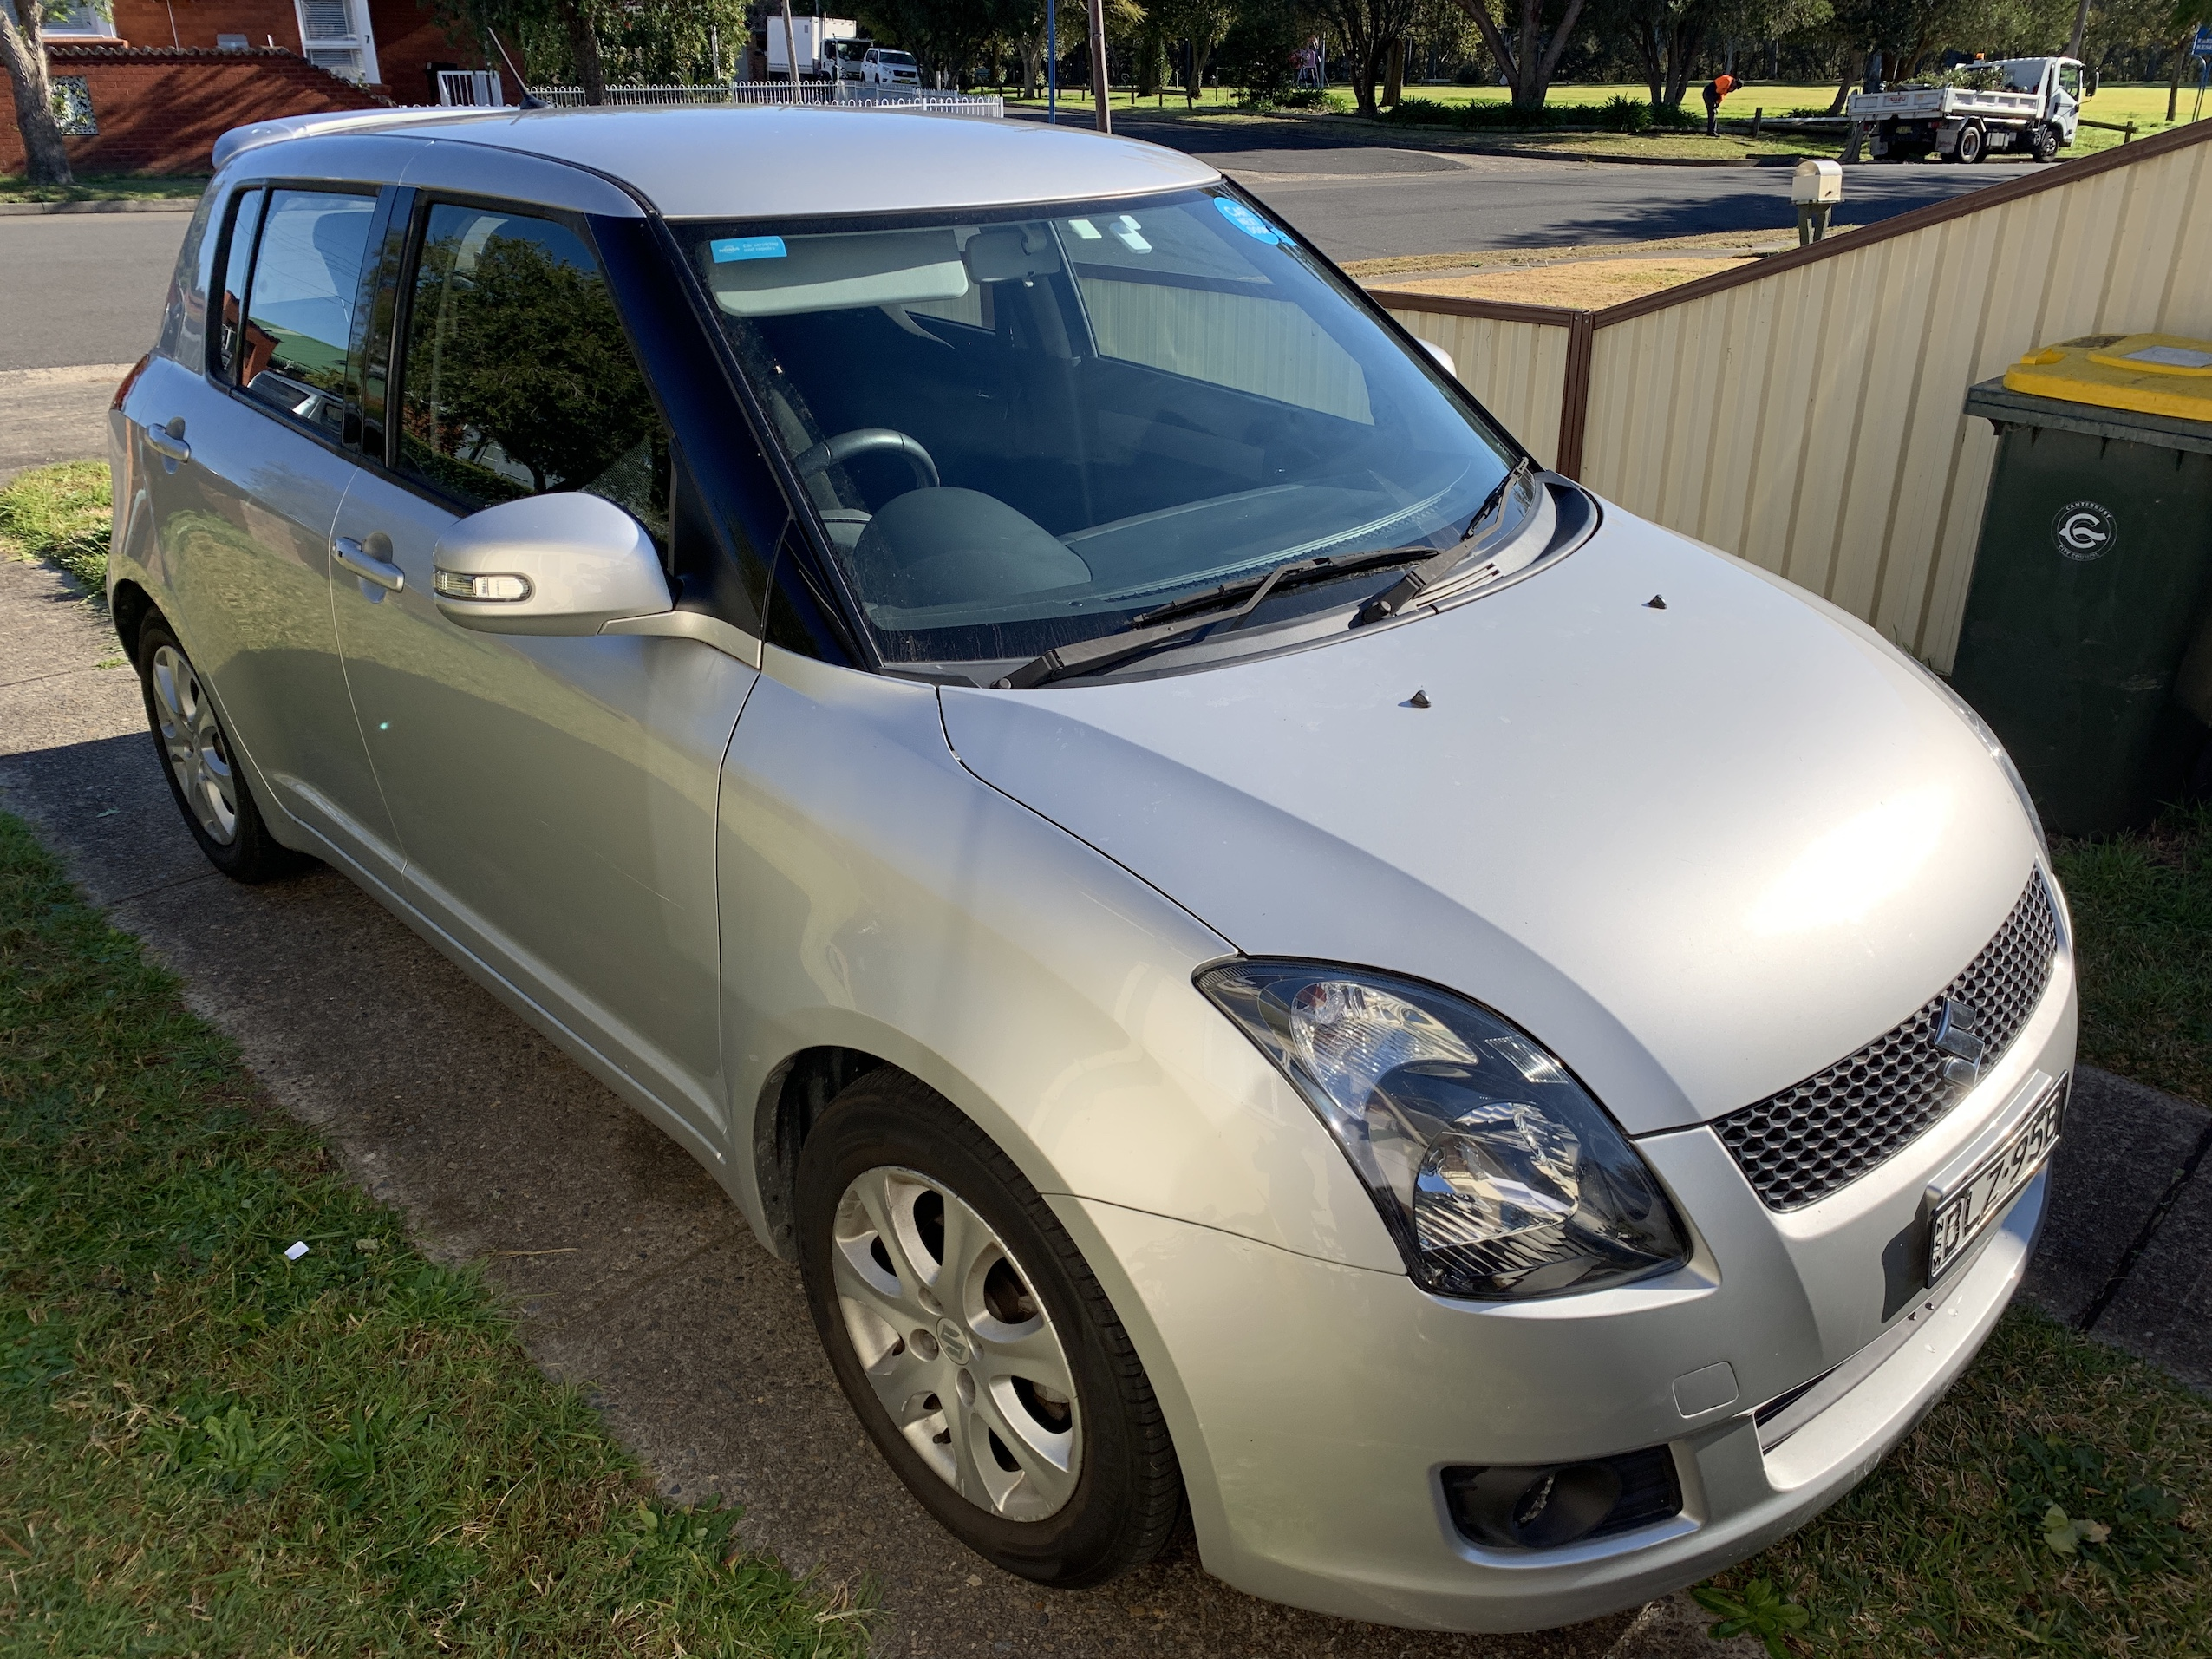 Picture of Monique's 2010 Suzuki Swift